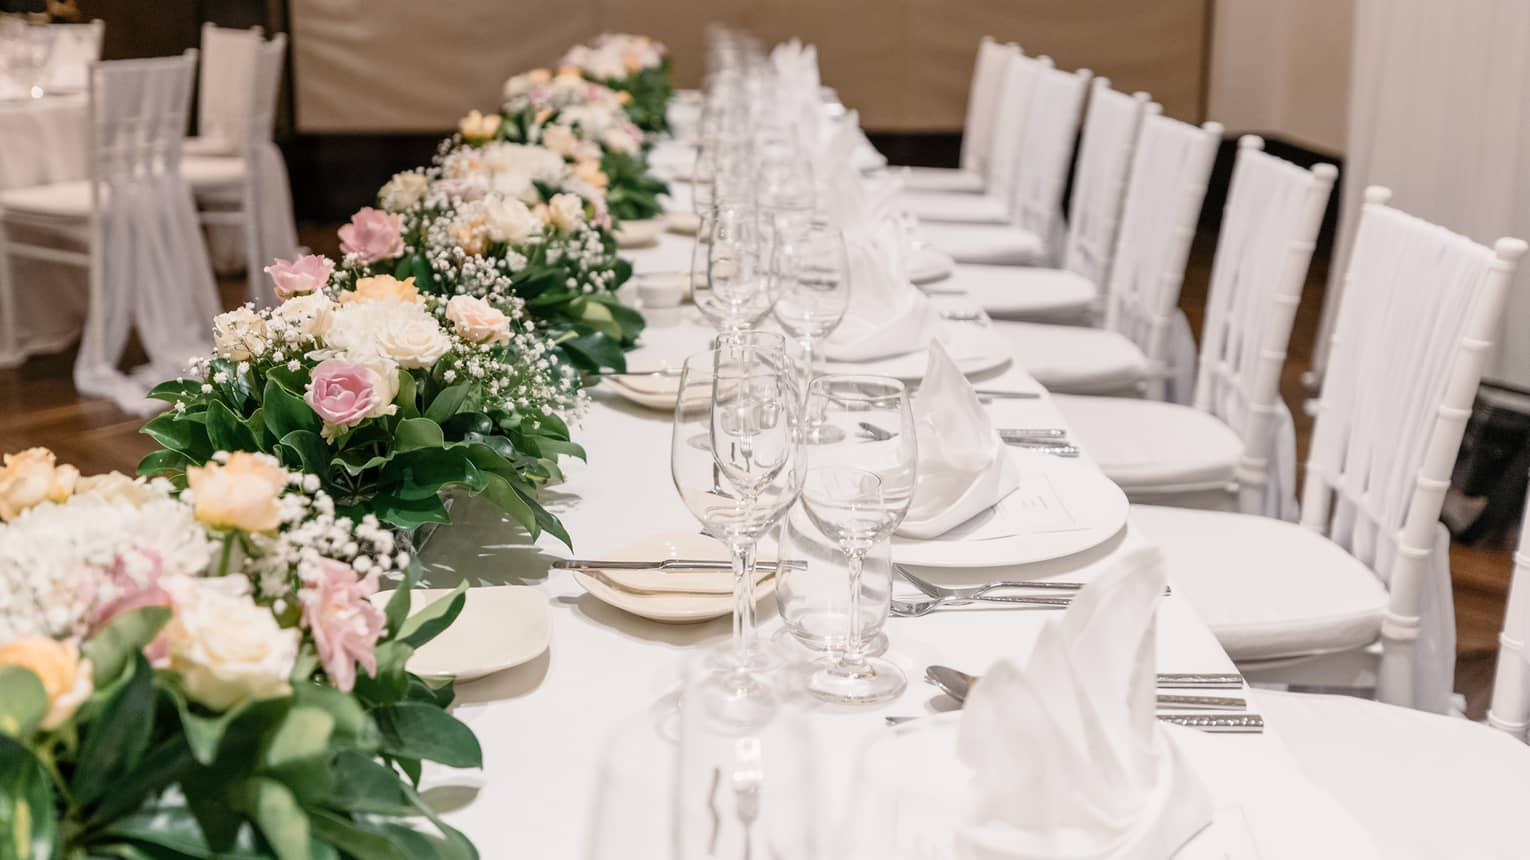 A banquet table is set with a white tablecloth, white porcelain dishes and clear glassware, green, white and pink florals